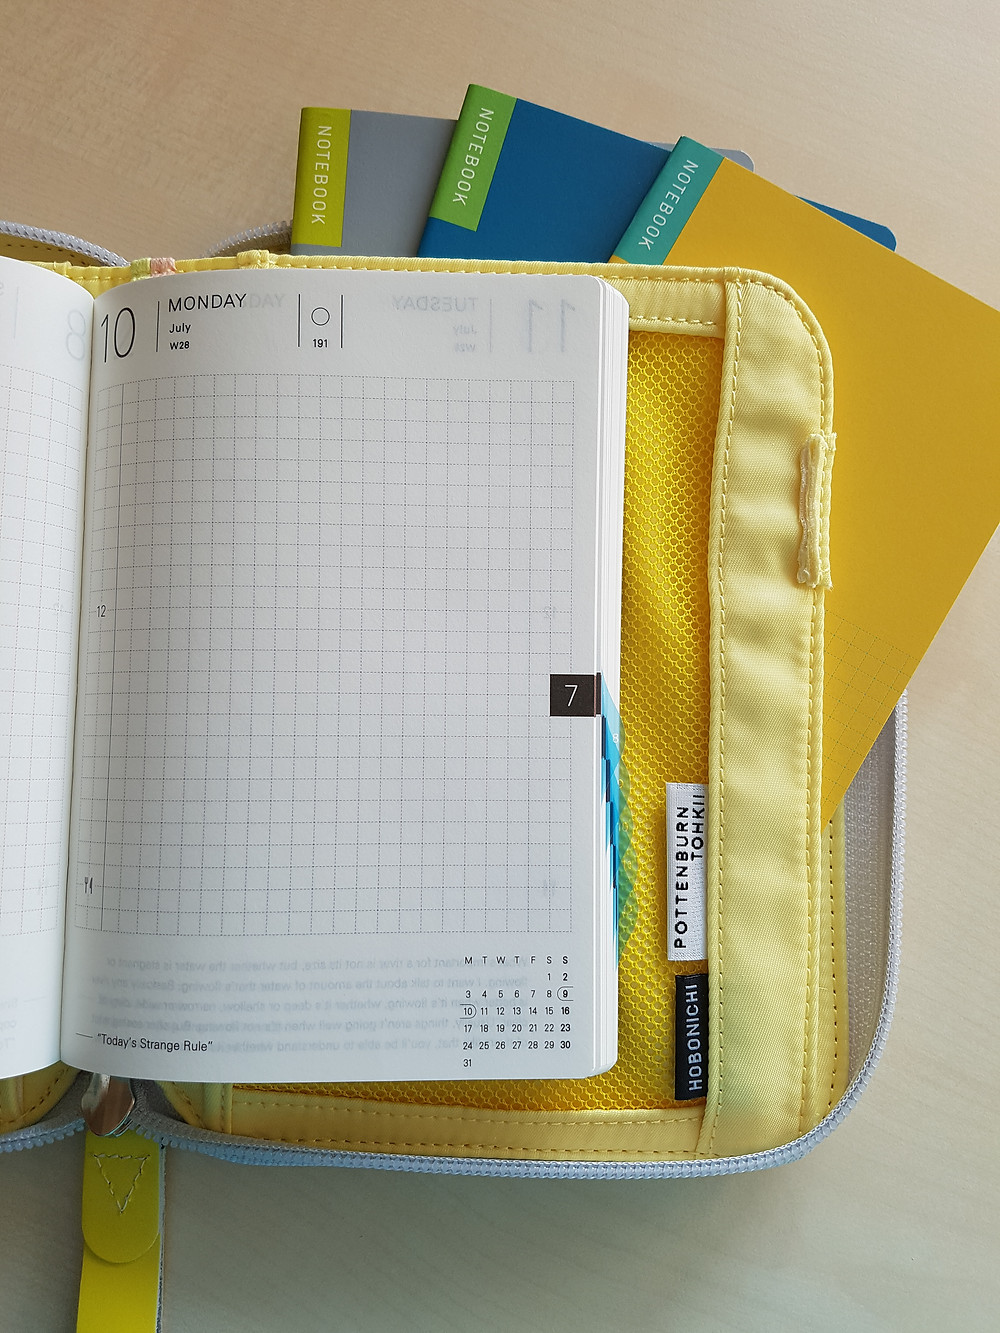 StickersSwissMade - blogpost - planner peace part 2 - Hobonichi Cousin and William Hannah discound notebook-2